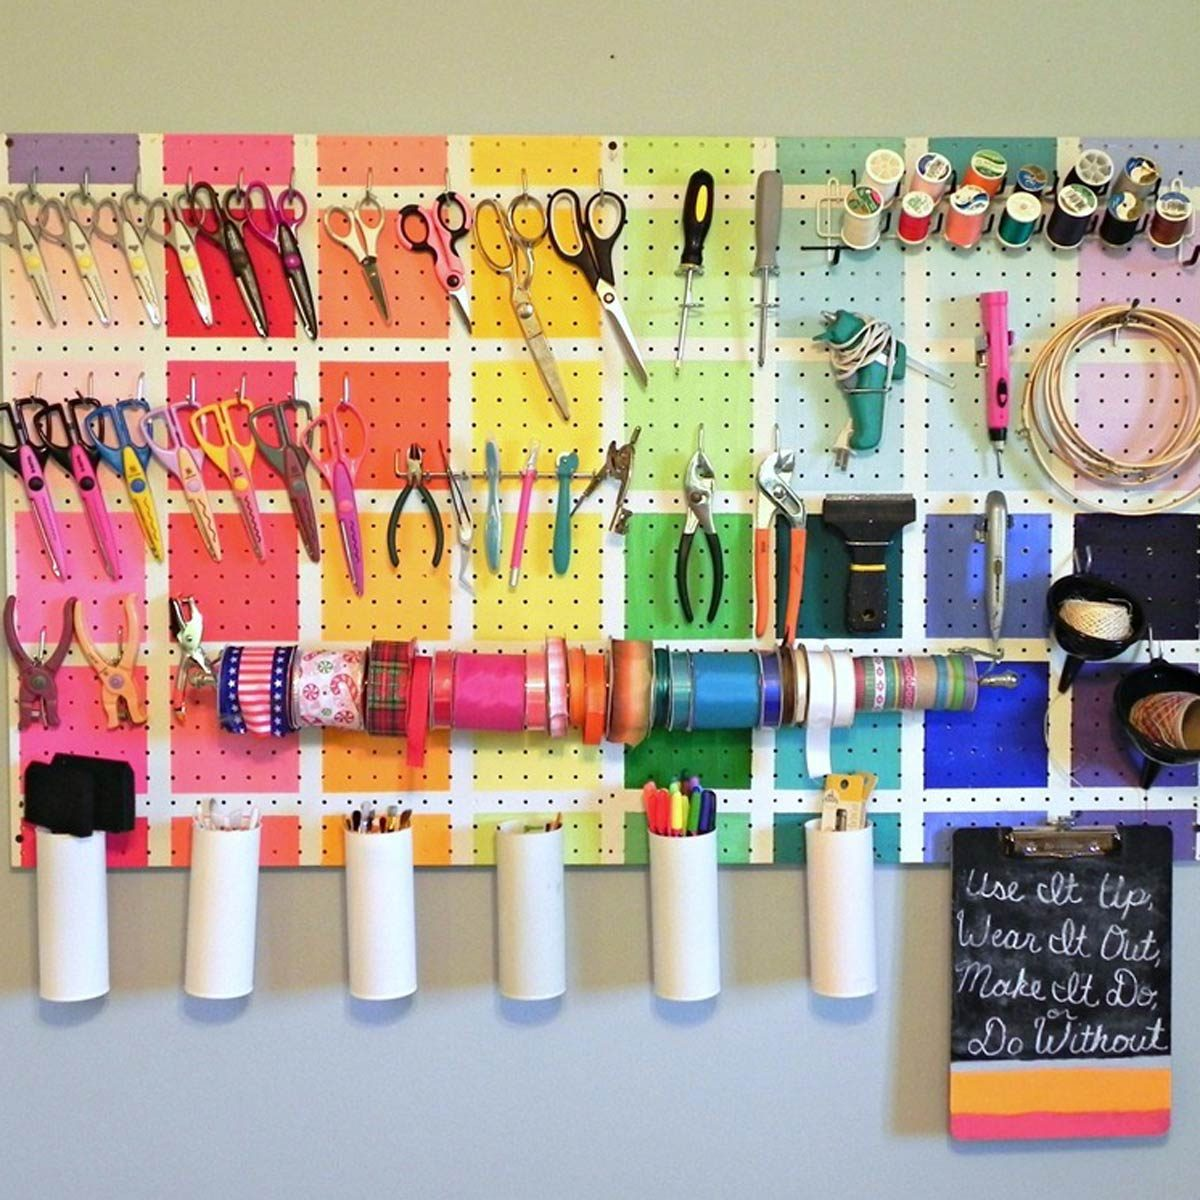 aadfh17aug019aa_05 Craft Peg Board